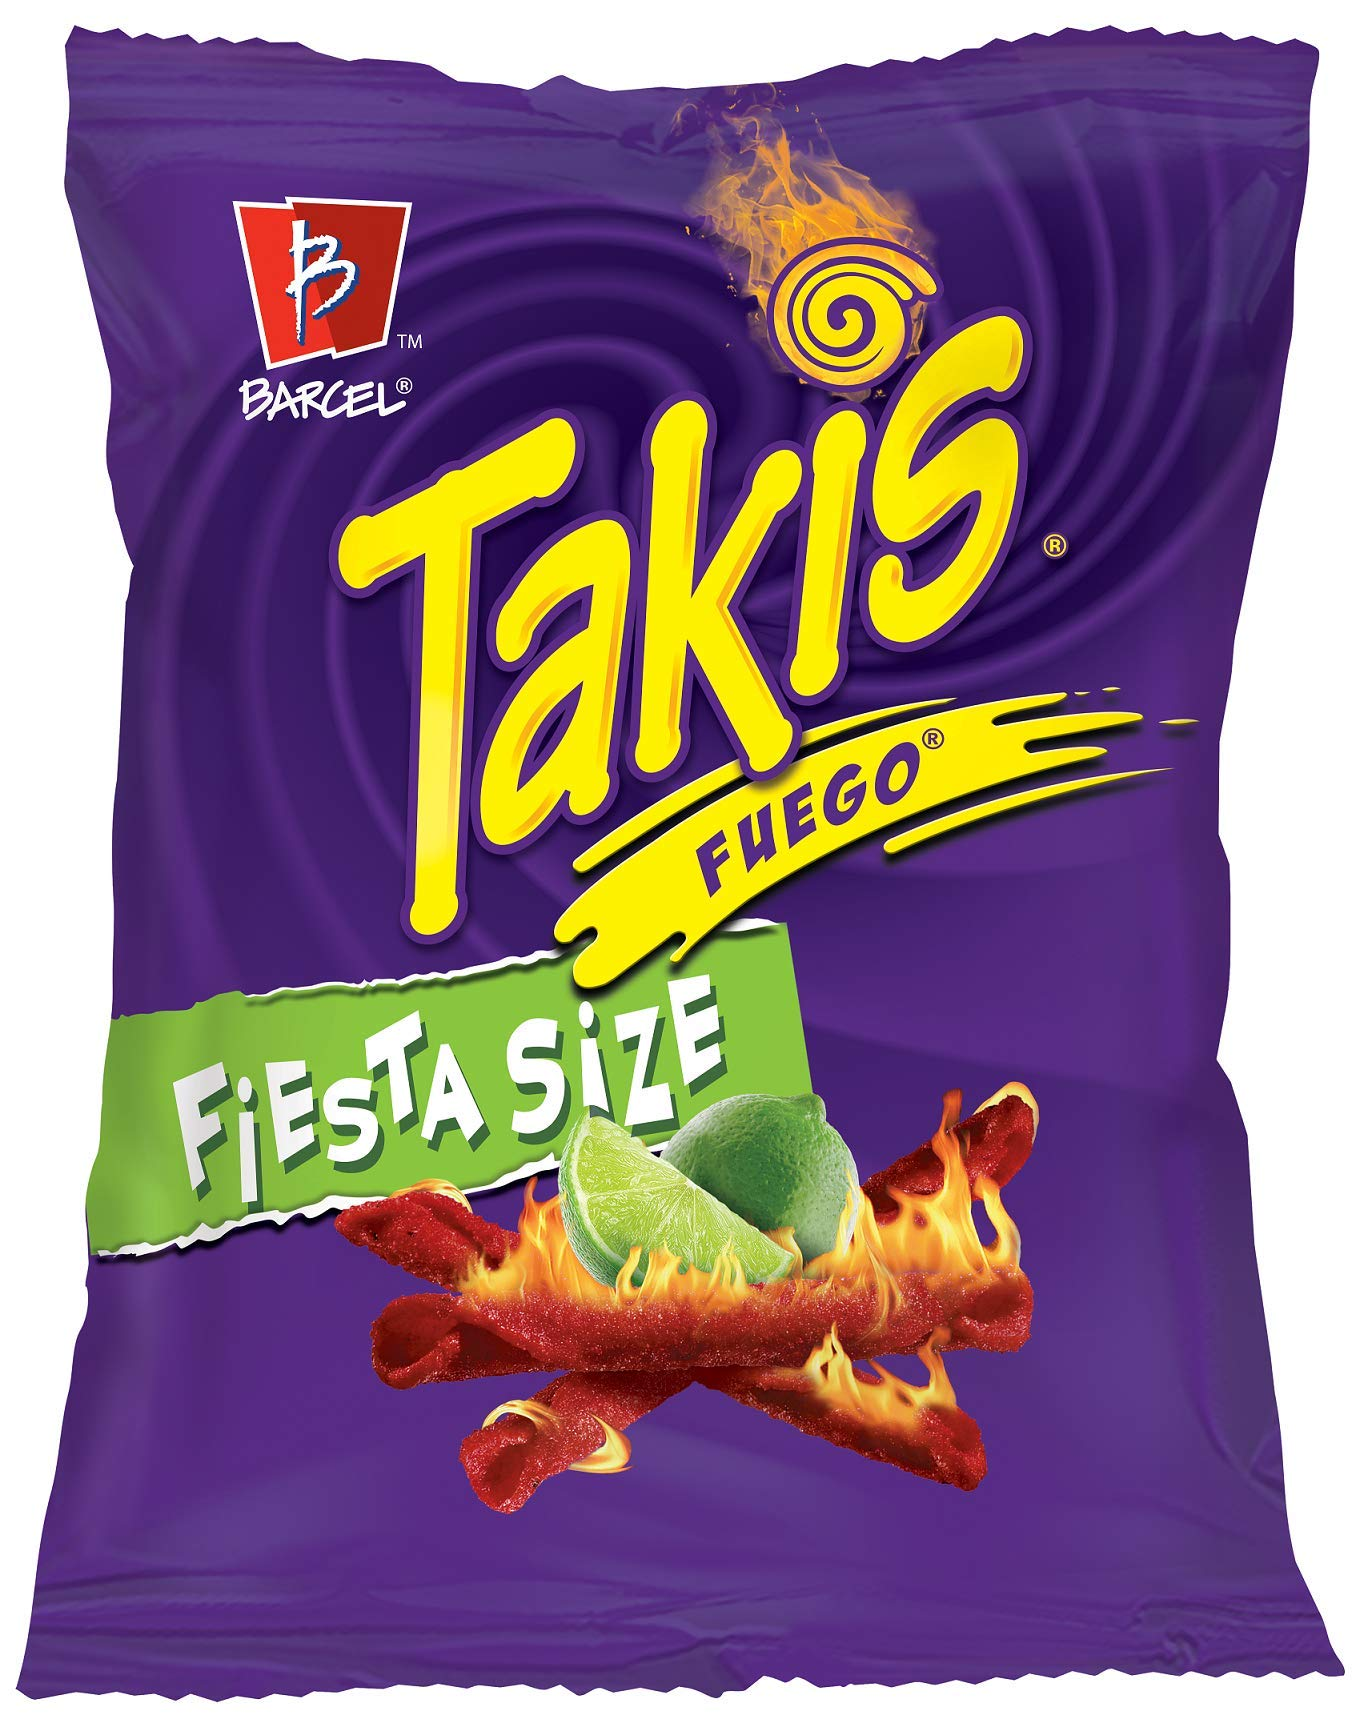 Barcel Takis - Crunchy Rolled Tortilla Chips – Fuego Flavor (Hot Chili Pepper & Lime), 20 Ounce